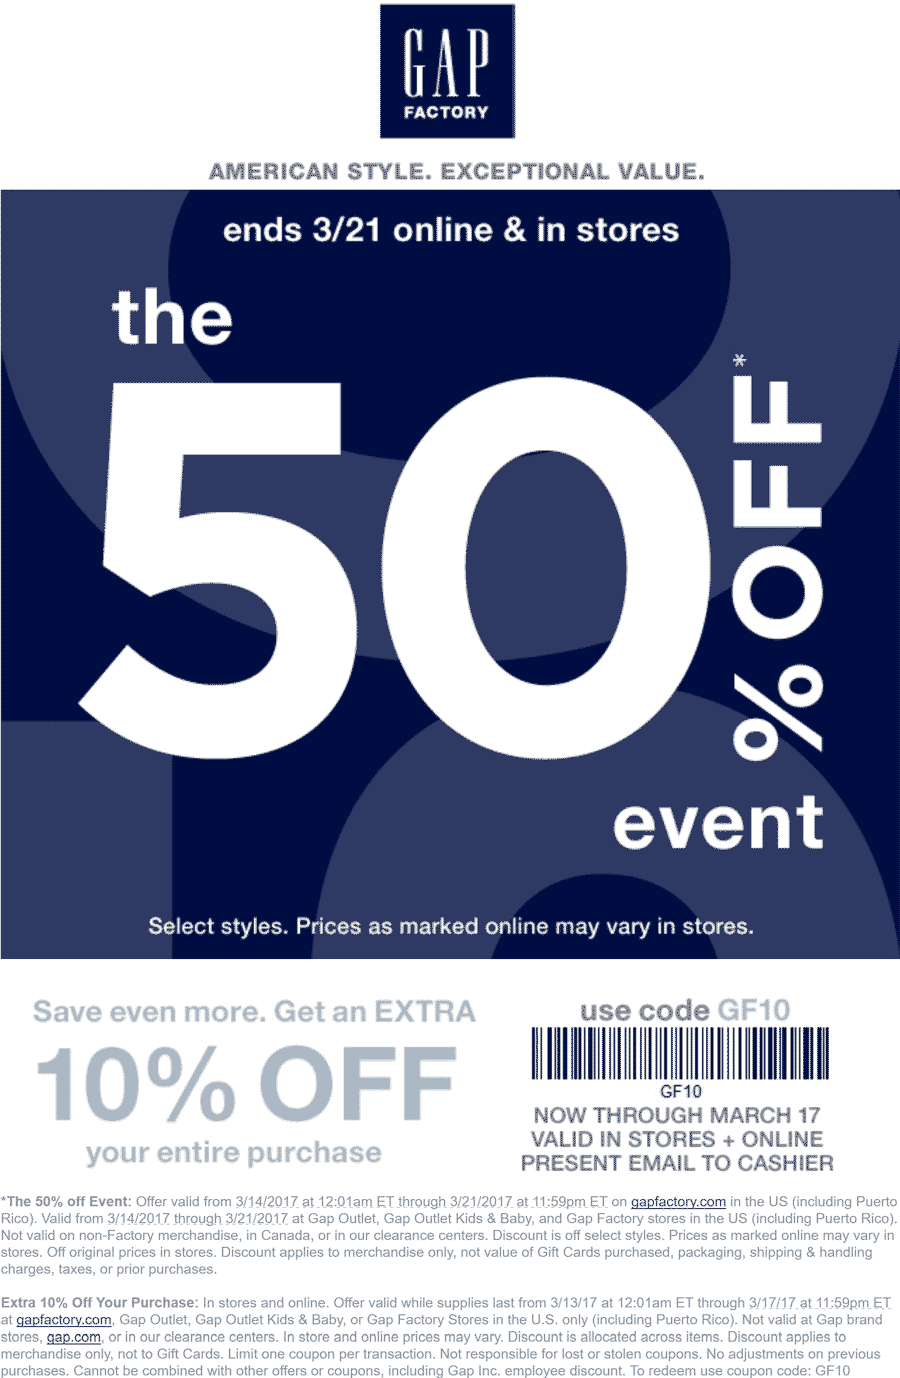 Gap Factory Coupon August 2018 50-60% off at Gap Outlet, Gap Outlet Kids & Baby, and Gap Factory, or online via promo code GF10